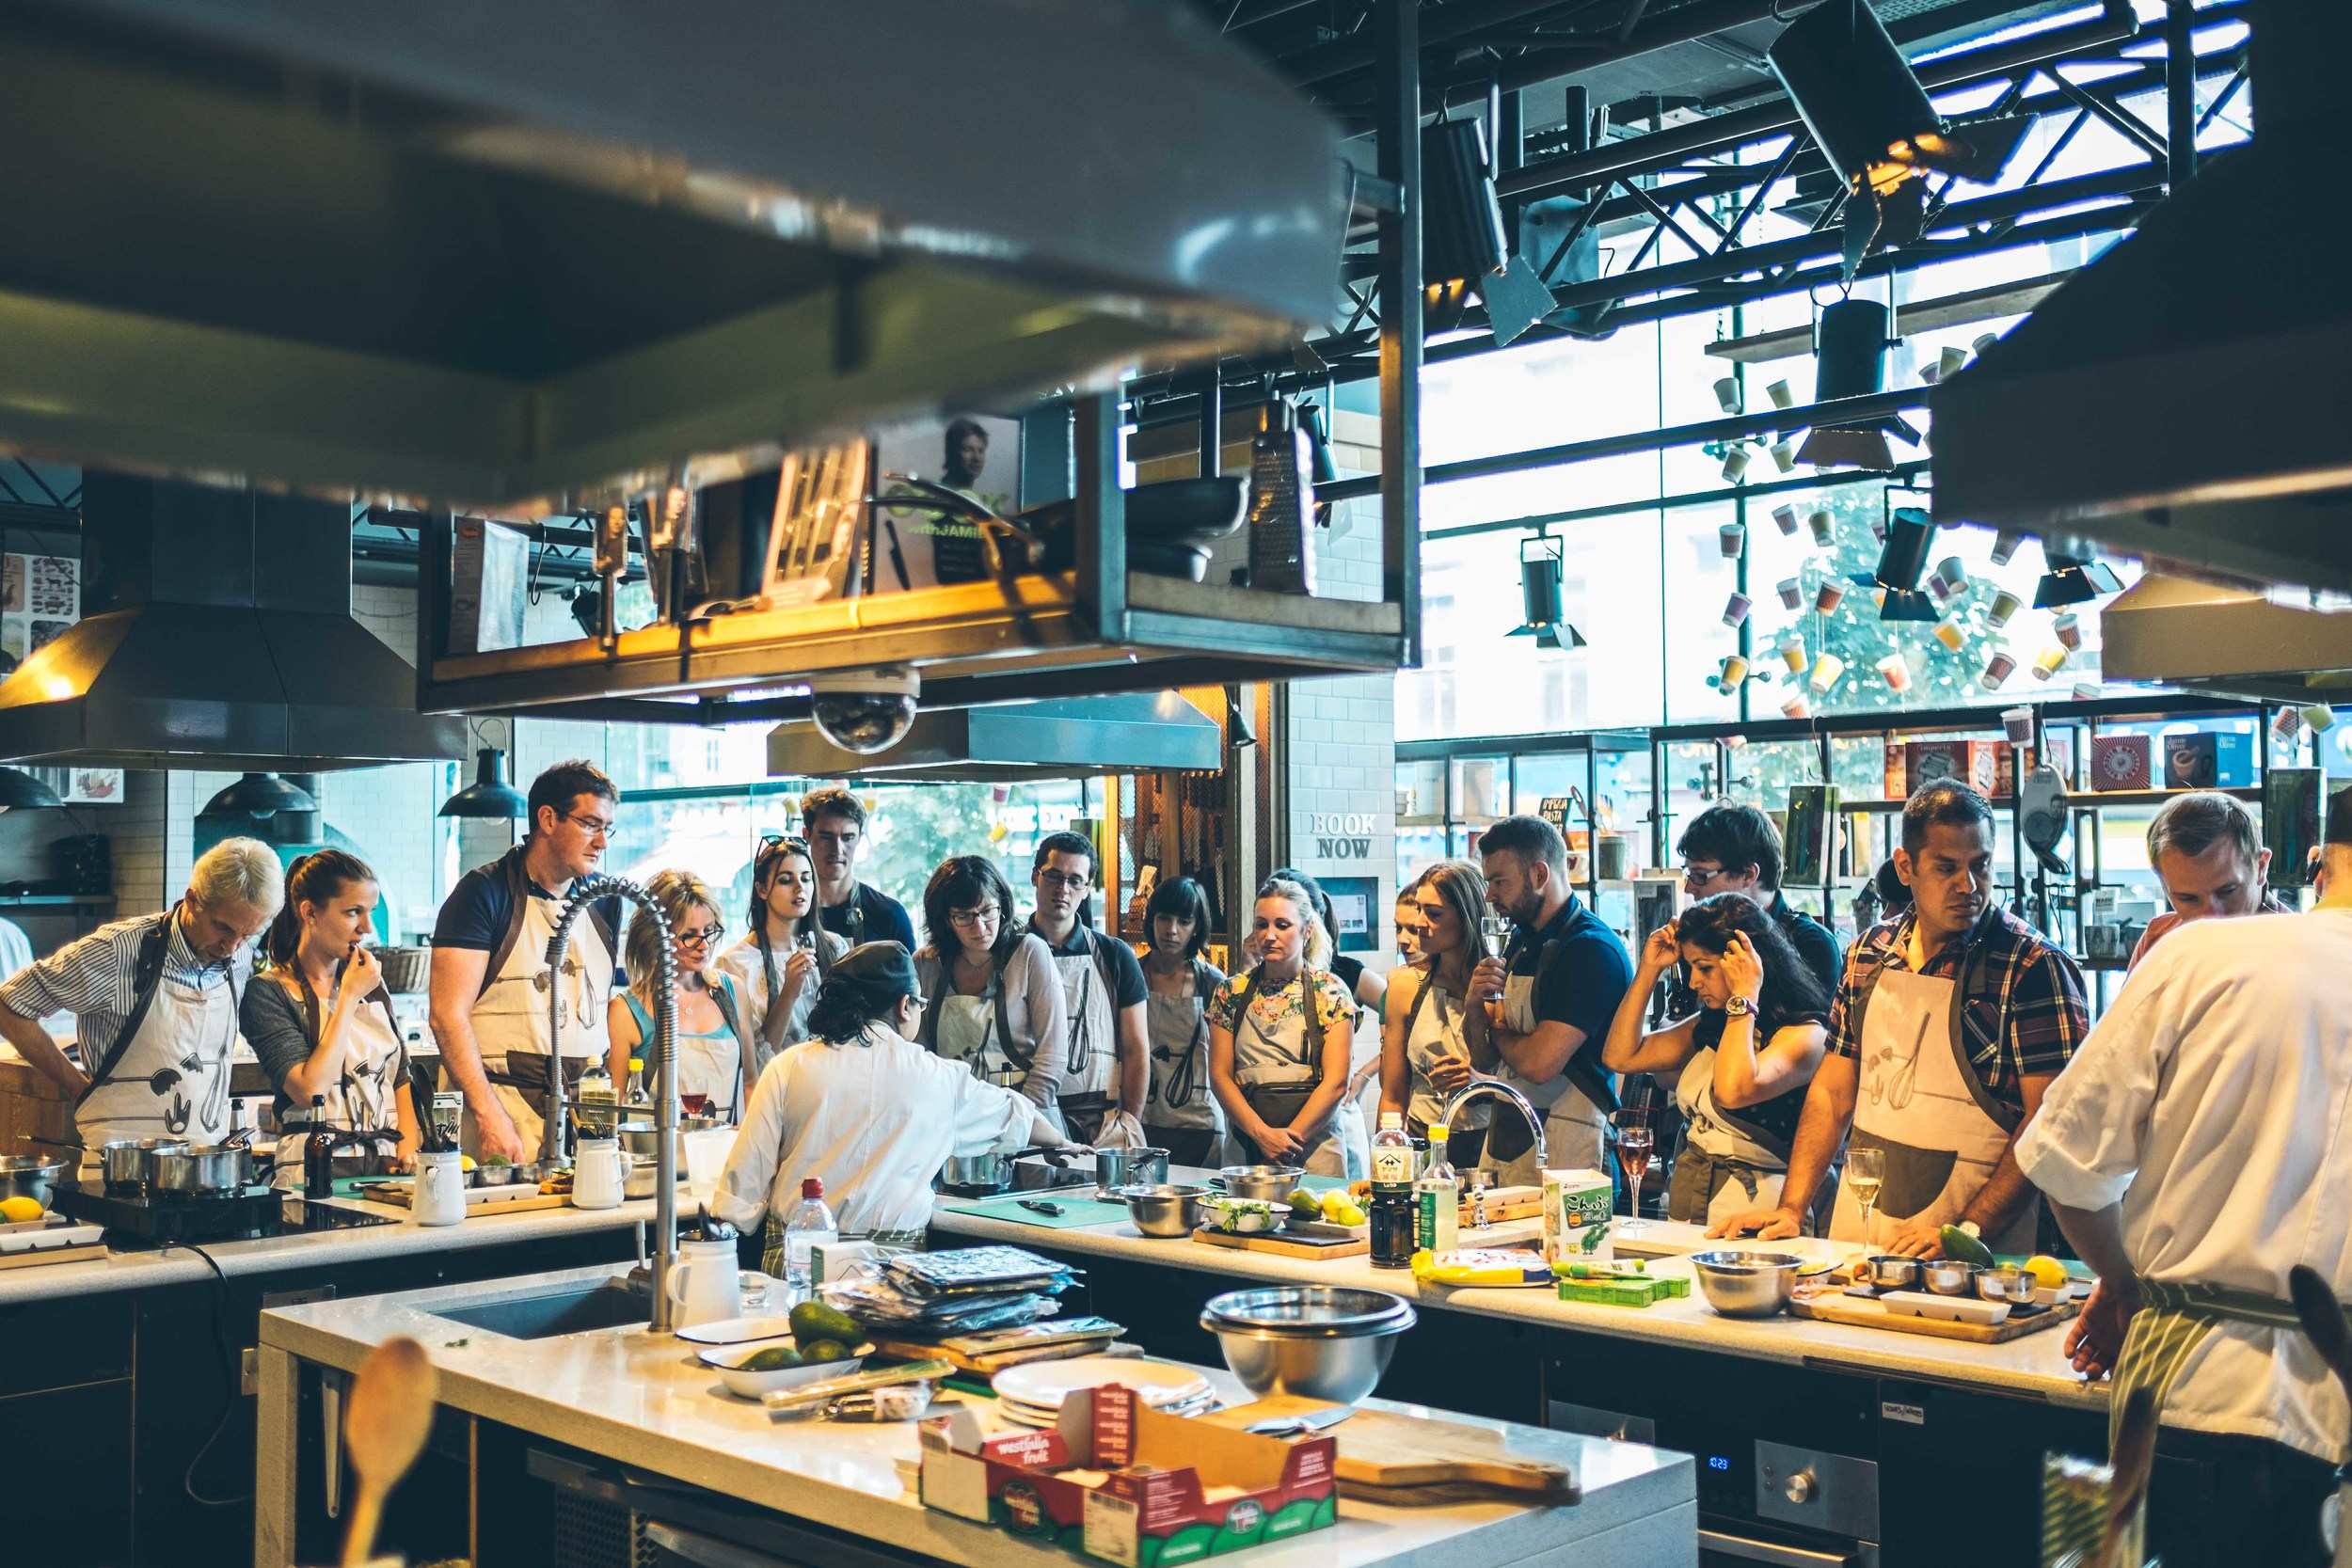 Cooking class at Jamie Oliver's Recipease in Notting Hill